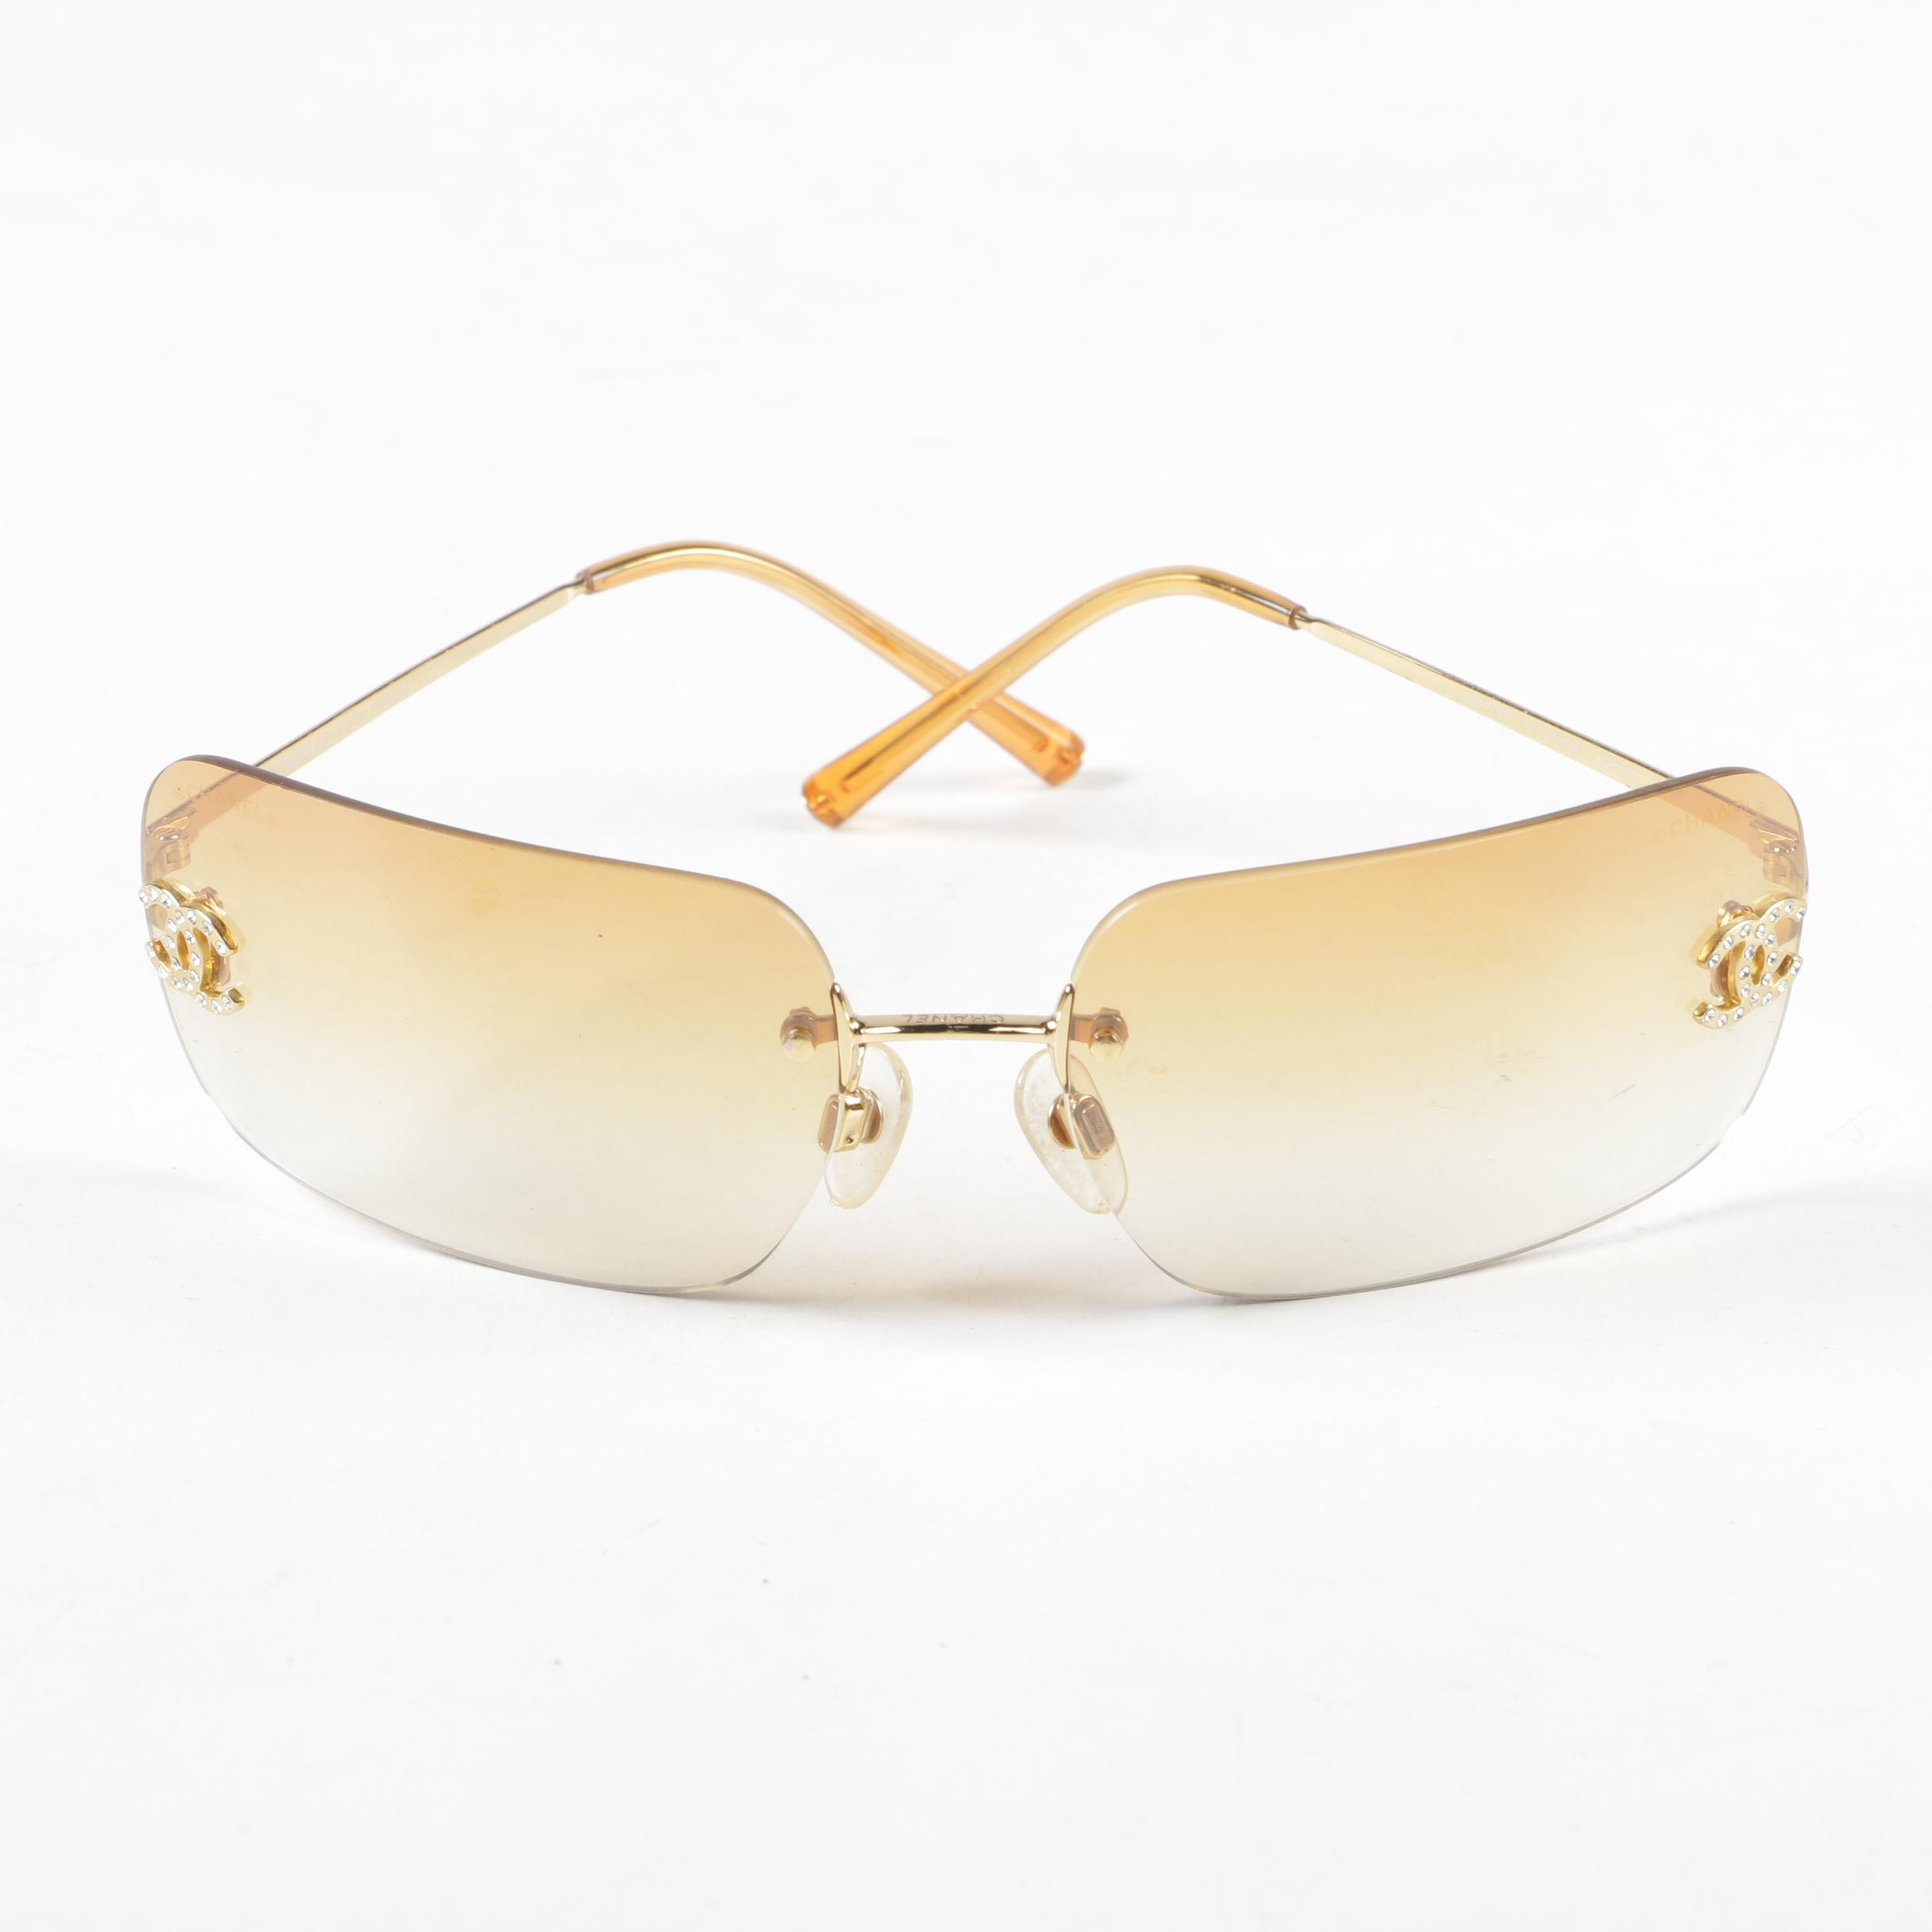 Chanel 4017-D Amber Gradient Rimless Sunglasses